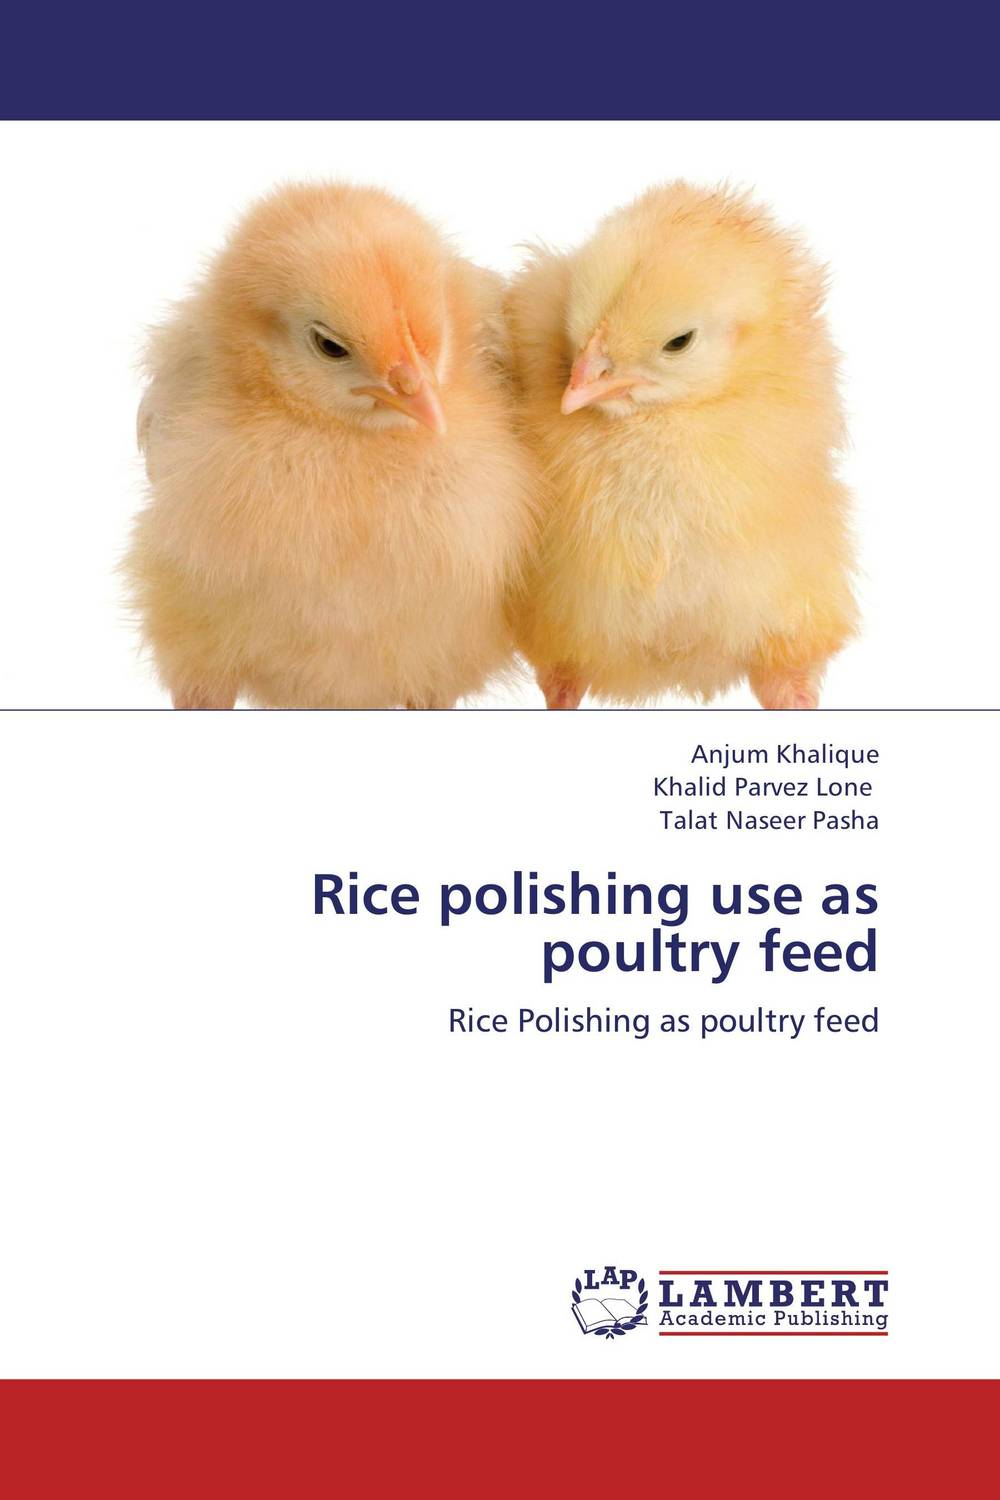 Rice polishing use as poultry feed